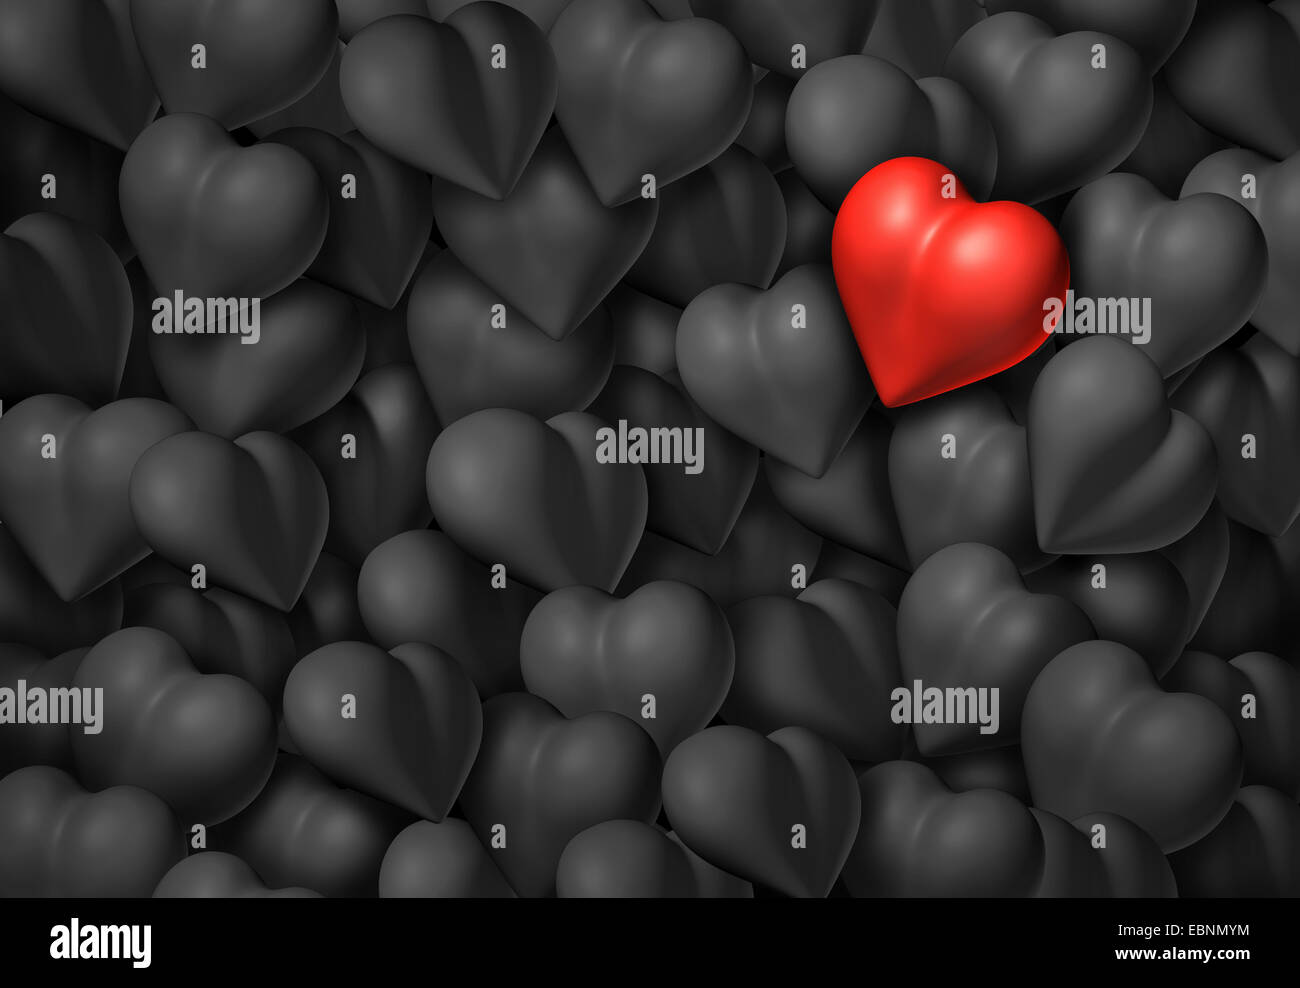 valentines day background with a group of grey hearts and one red